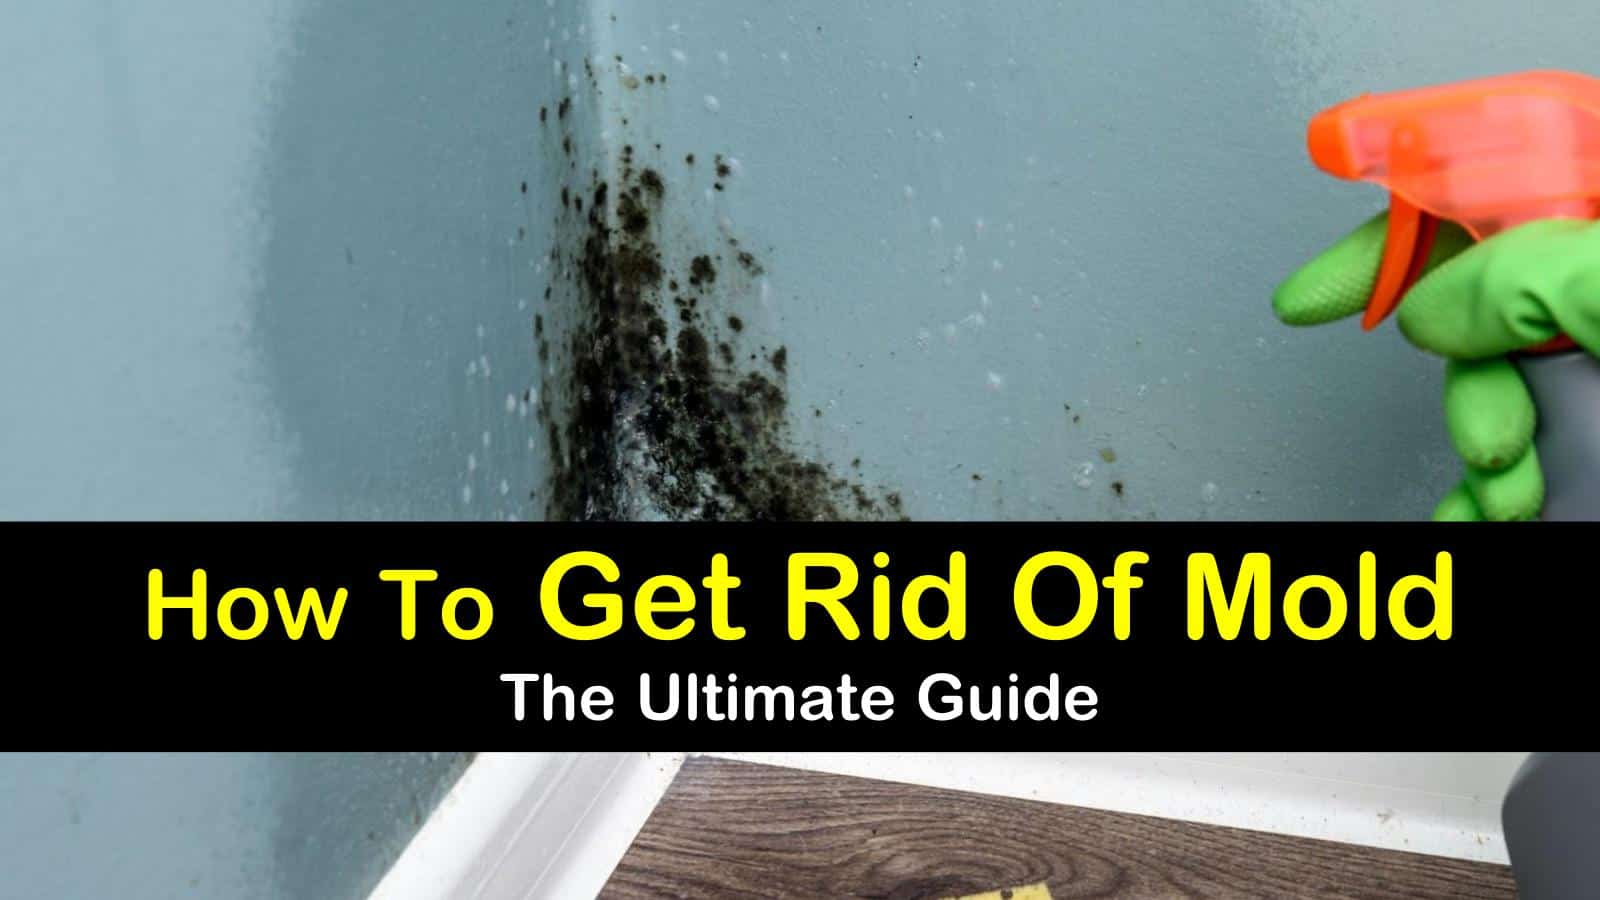 how to get rid of mold - the ultimate guide